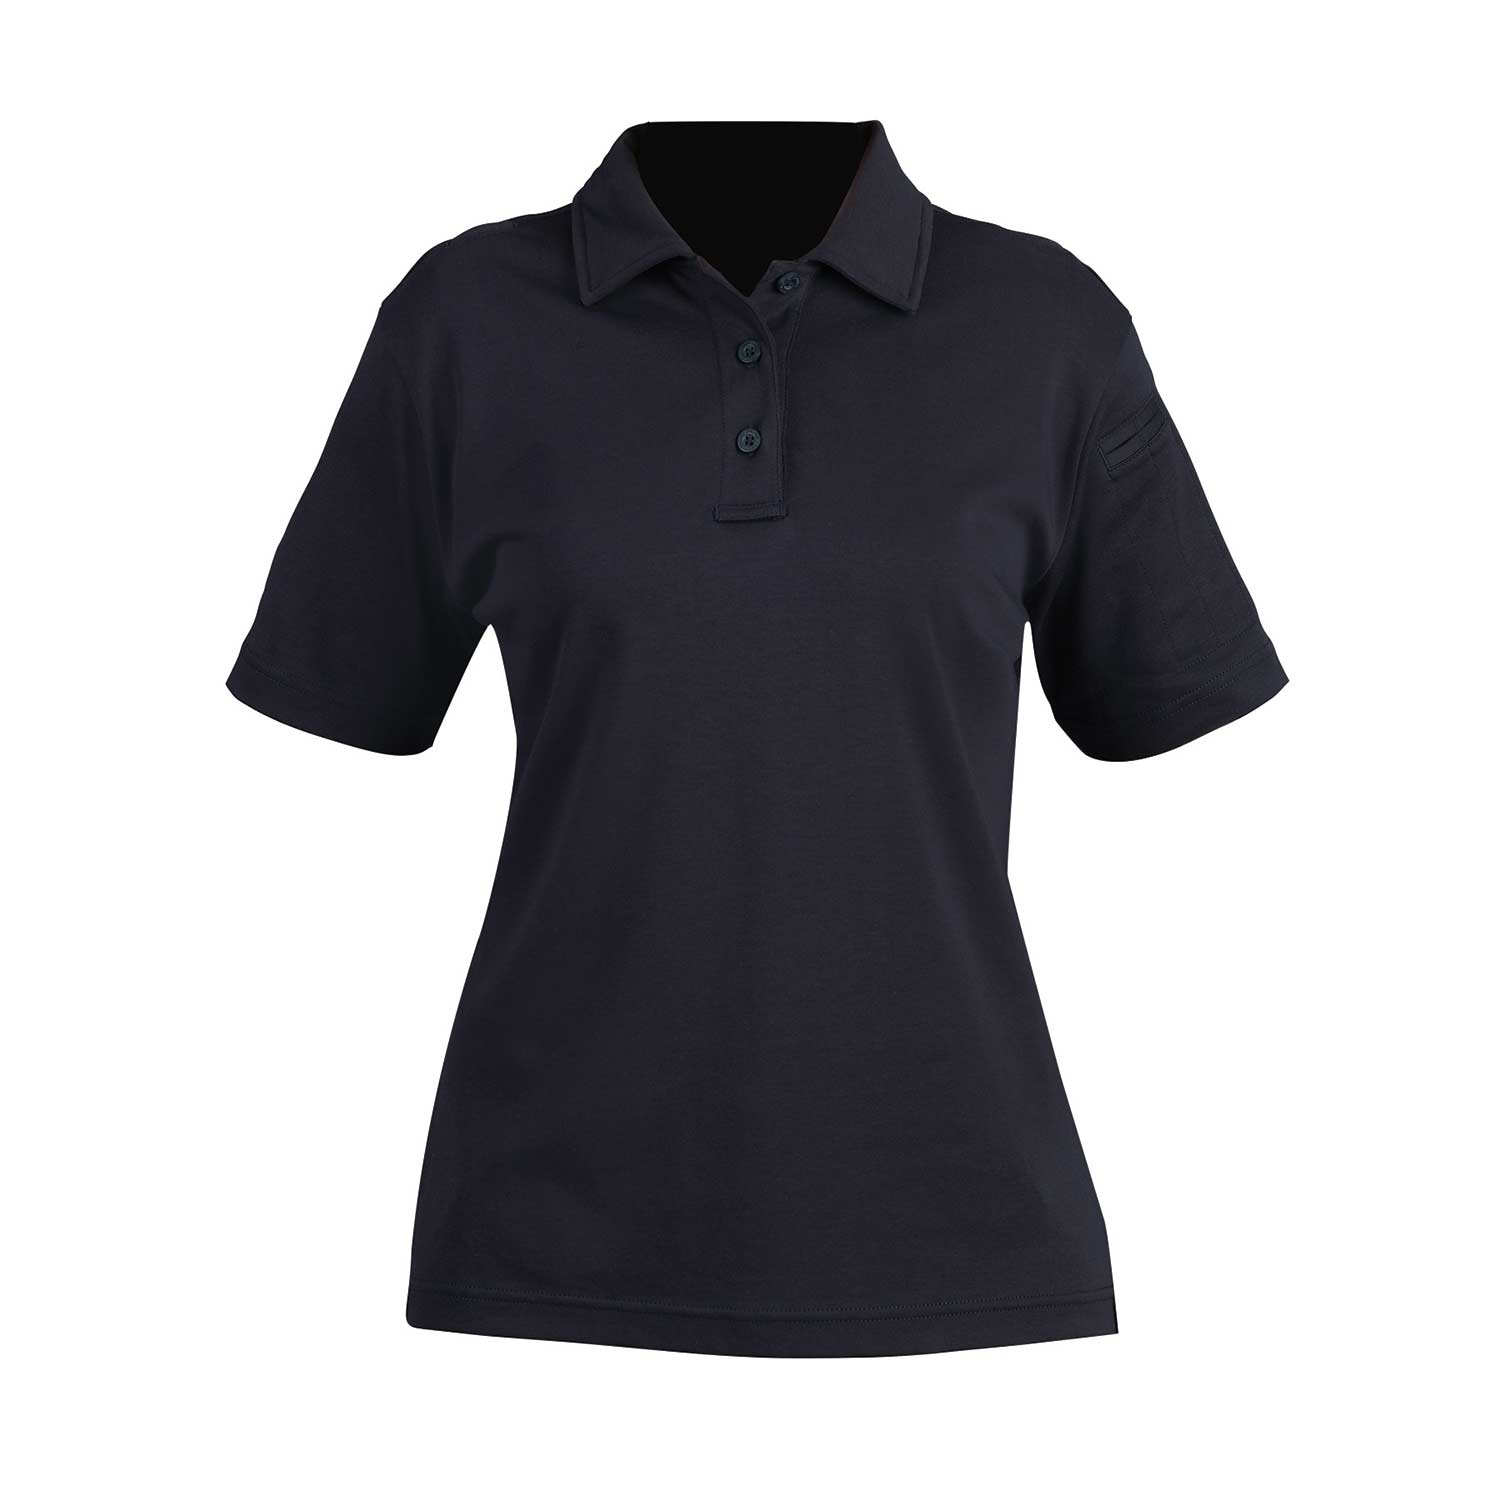 PROPPER Women's Uniform Cotton Polo